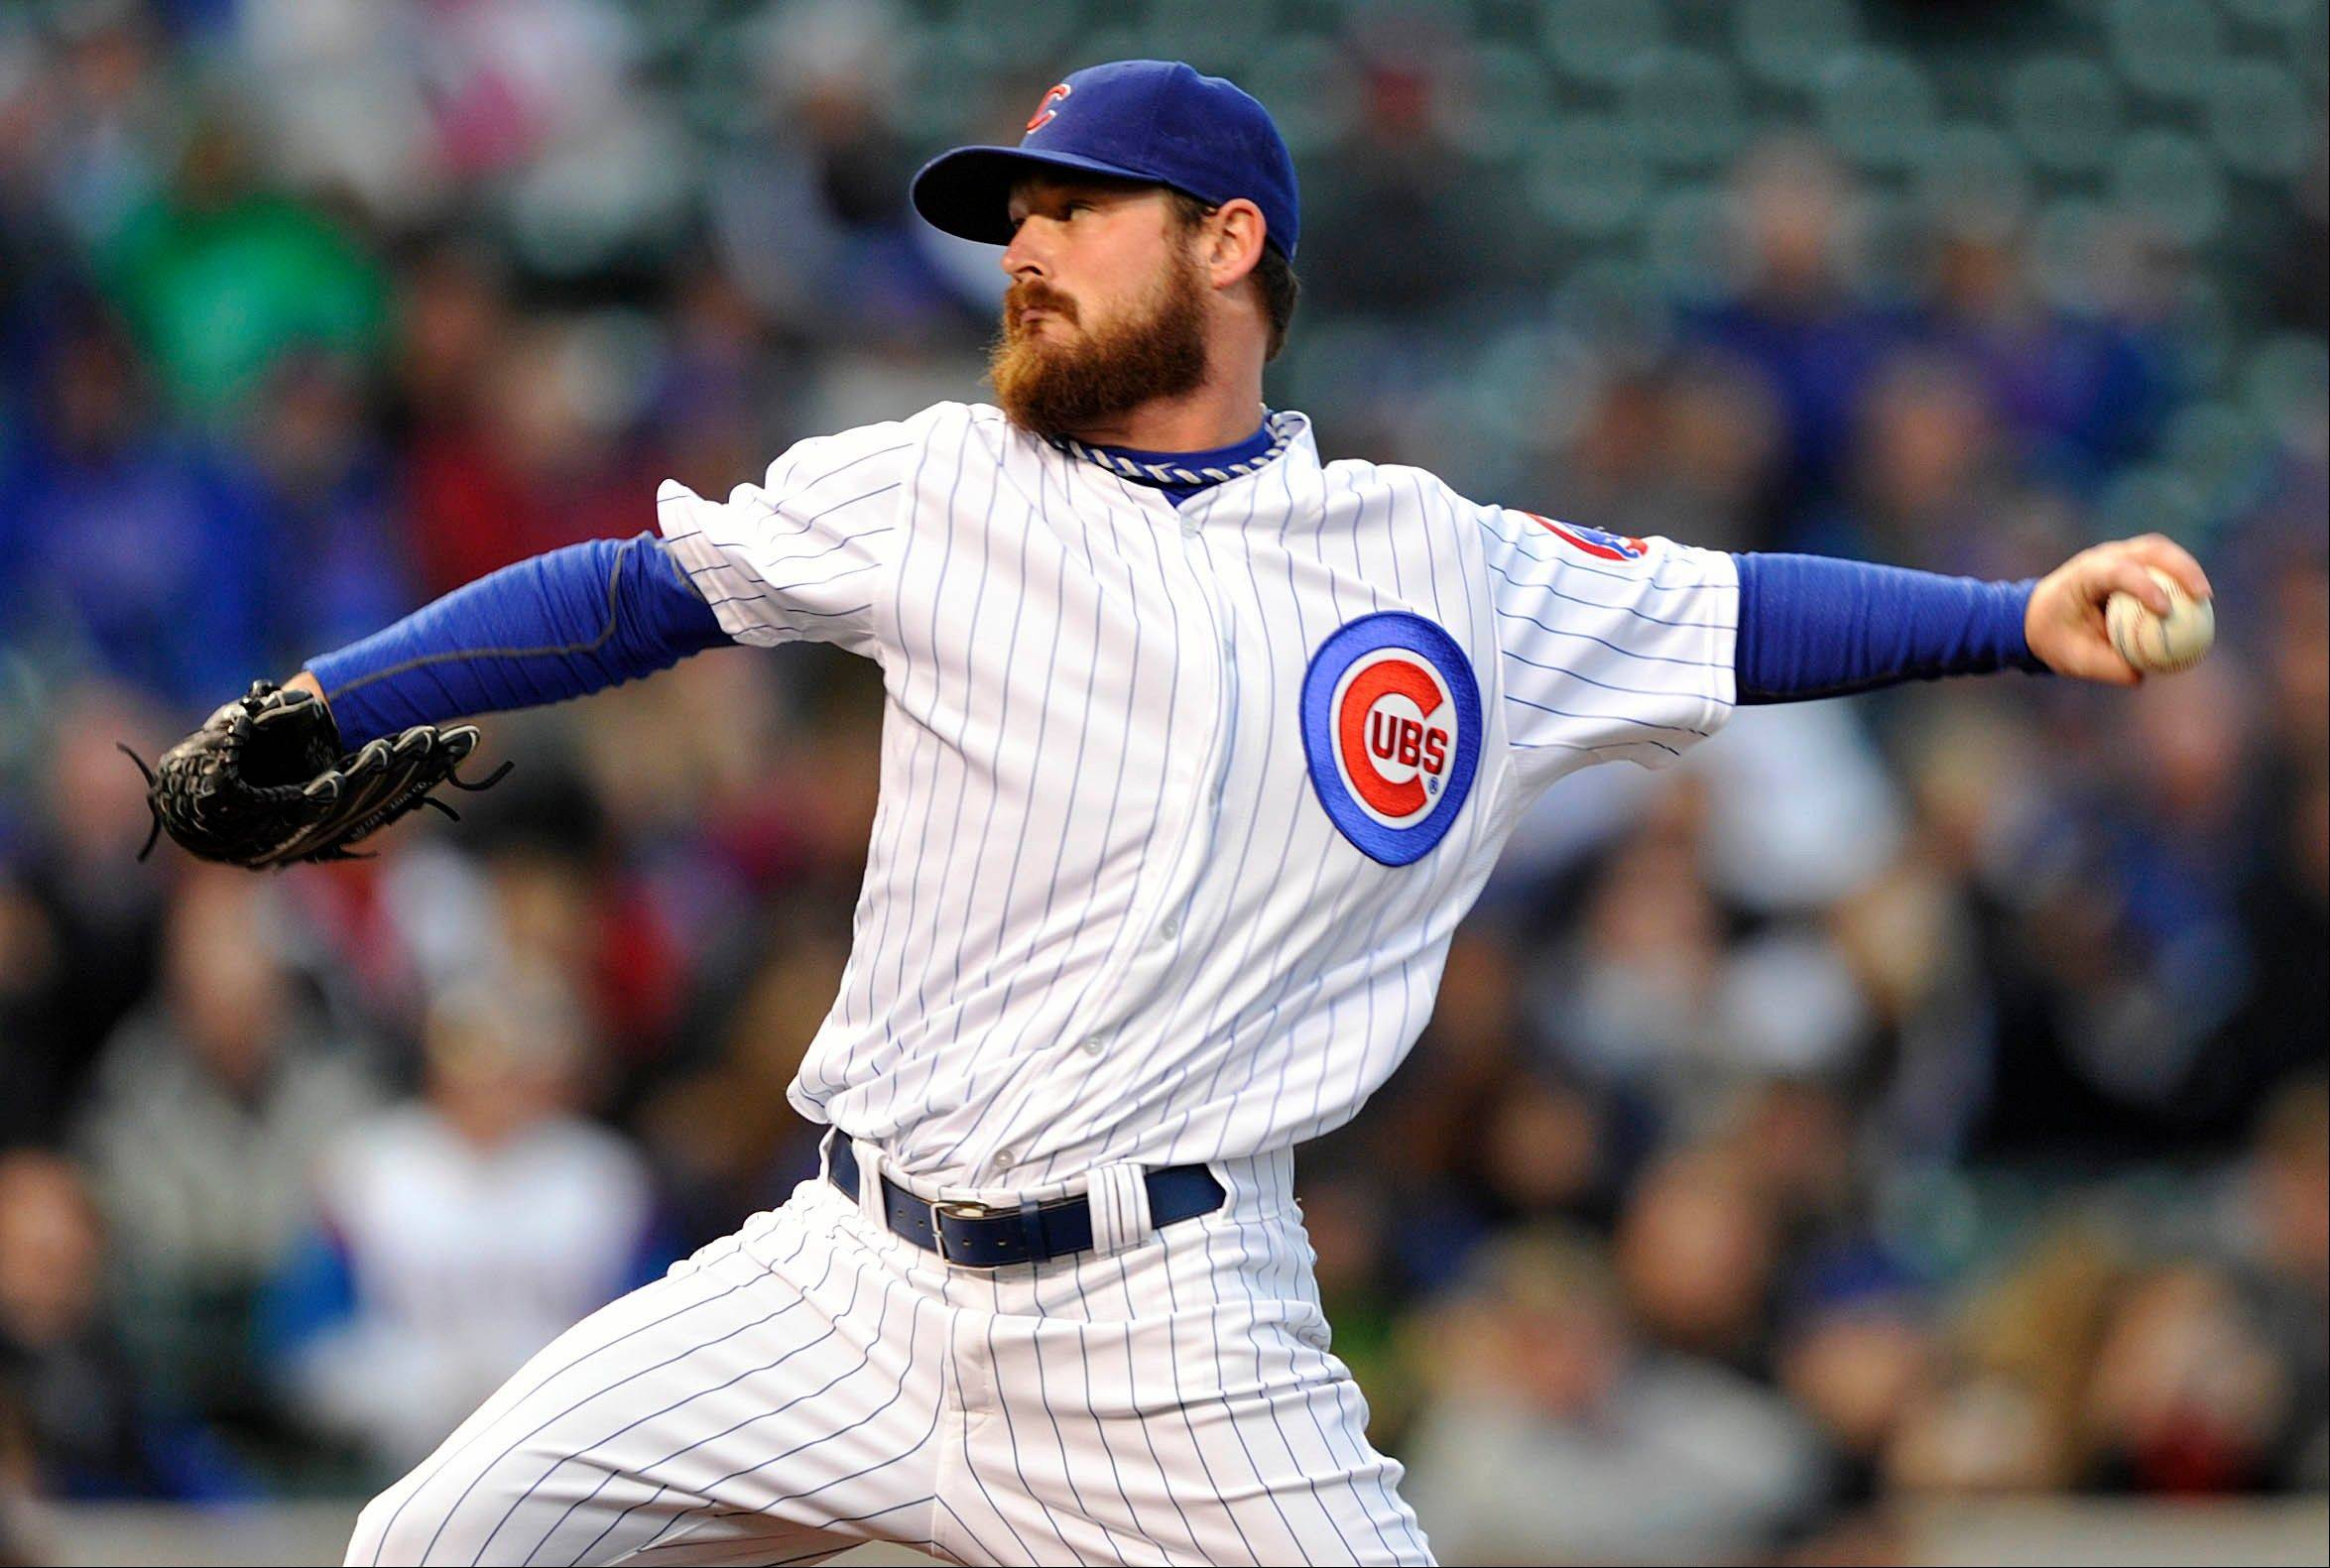 Cubs starter Travis Wood allowed only 2 hits over 7 shutout innings Monday night against the Rockies, improving his record to 4-2.